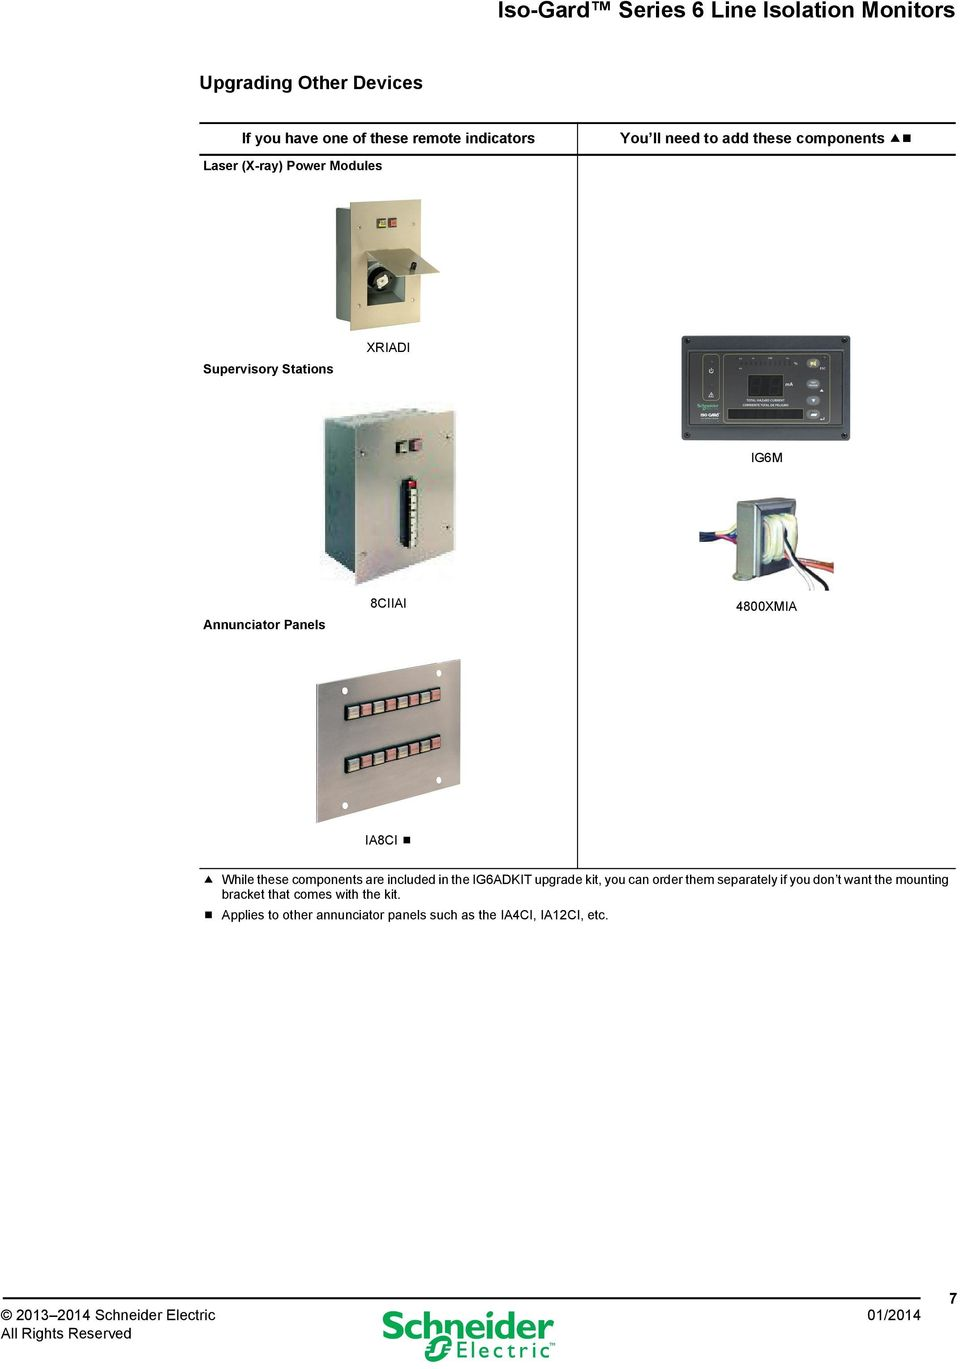 Iso Gard Series 6 Line Isolation Monitors Pdf Dorani Intercom Wiring Diagram Included In The Ig6adkit Upgrade Kit You Can Order Them Separately If Don T